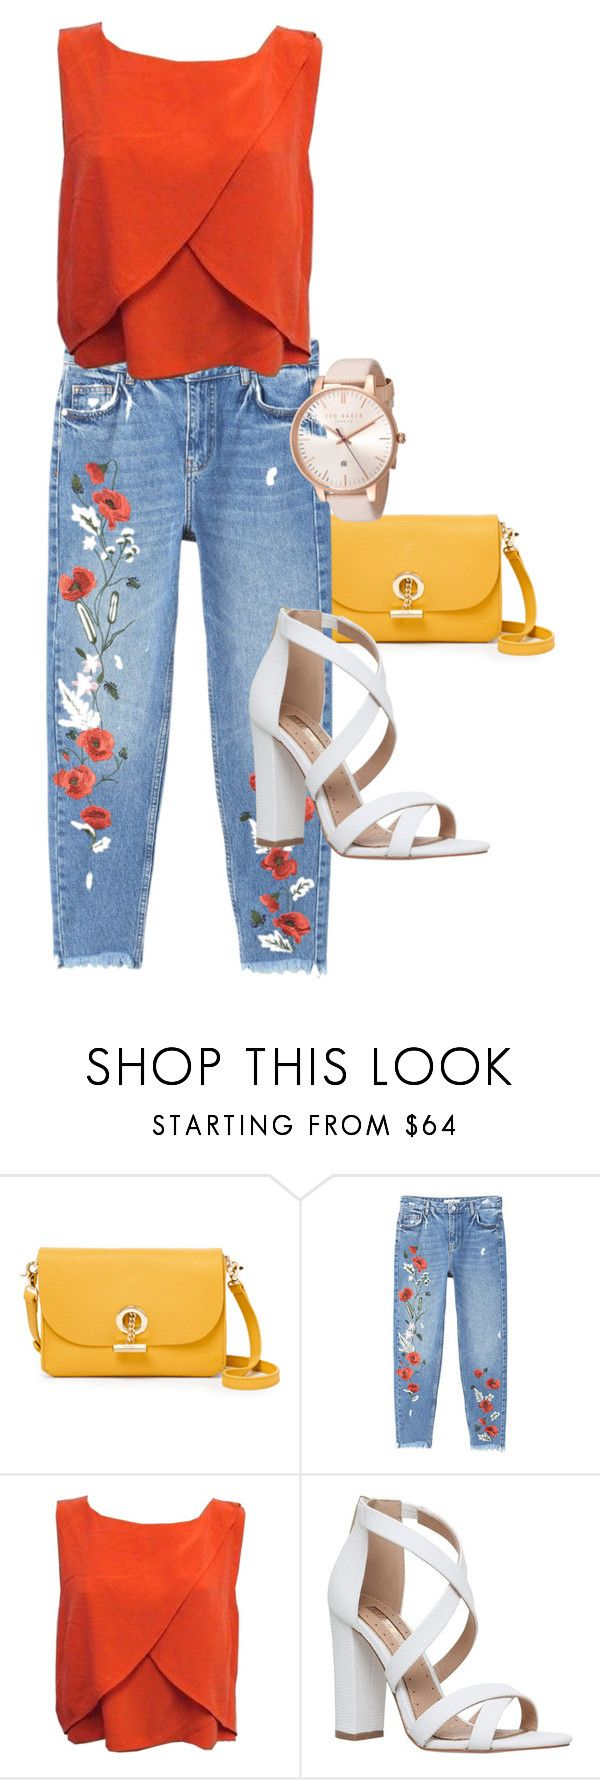 """""""Chic to work"""" by isizuniga on Polyvore featuring Waverly, MANGO, Rebecca Minkoff, Miss KG, Ted Baker and workconfortableclothes"""